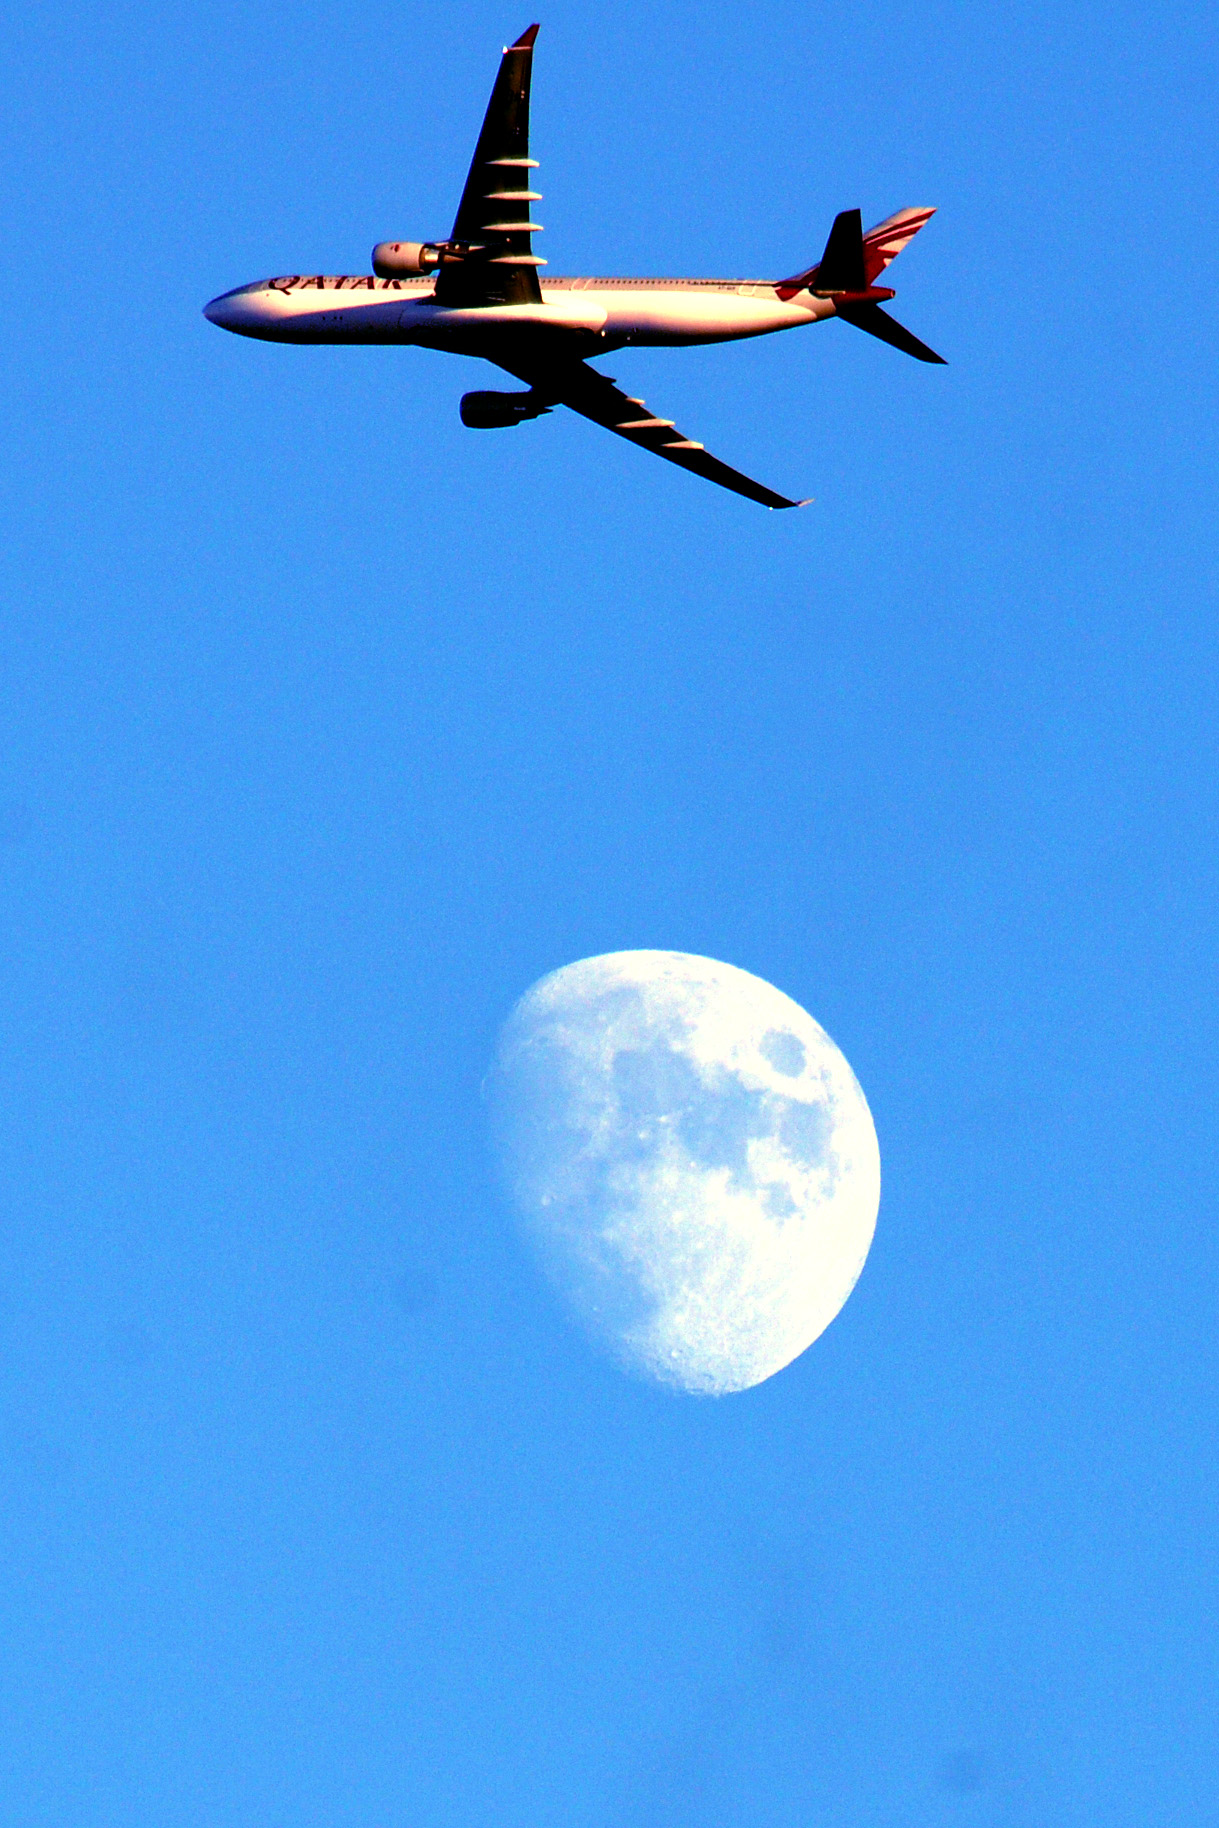 Plane in Great Sankey is over the moon